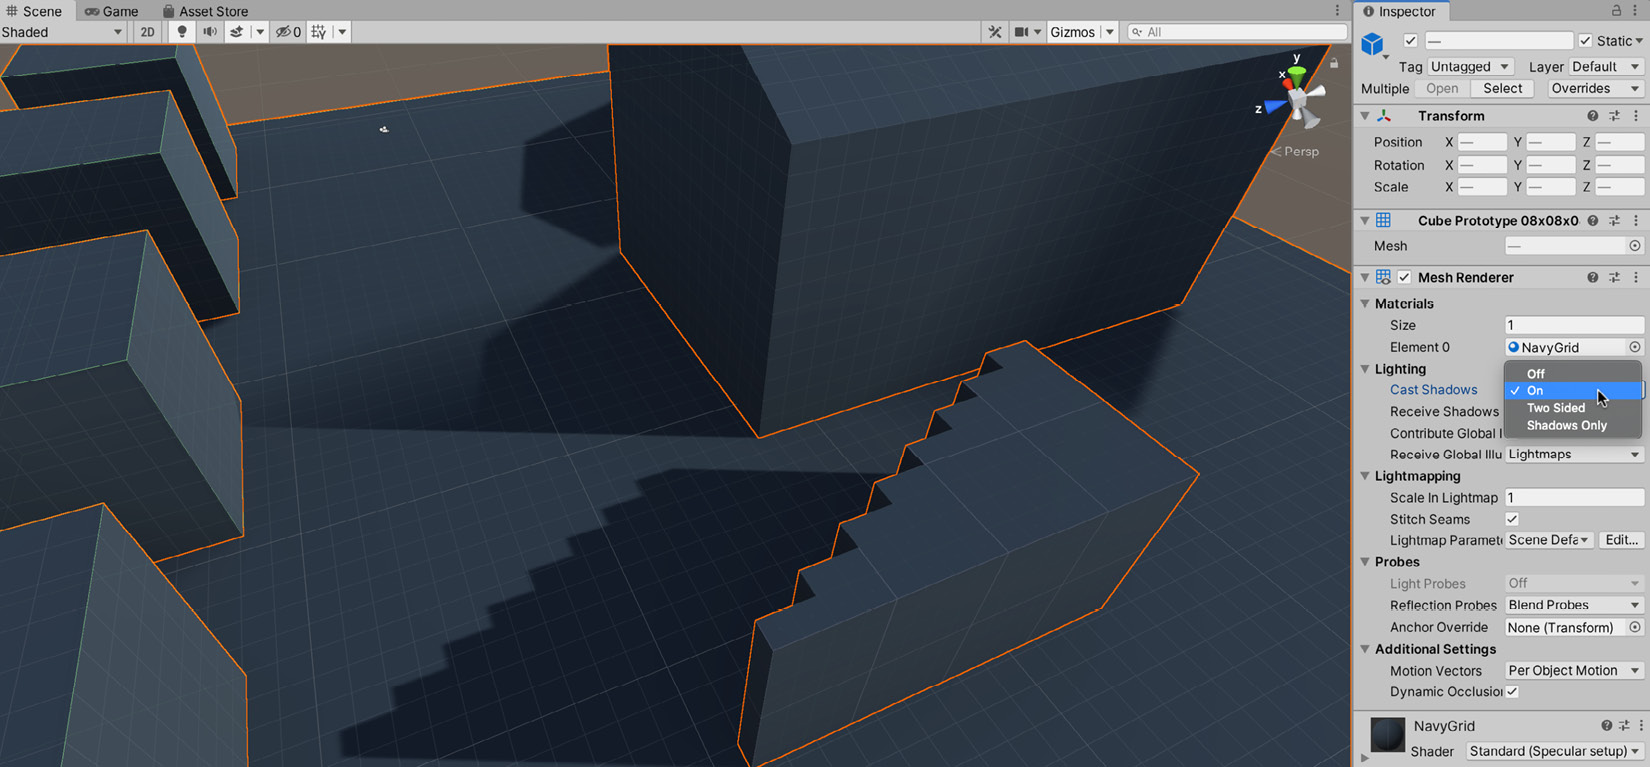 Figure 1.33 – Enabling cast shadows from the Mesh Renderer component